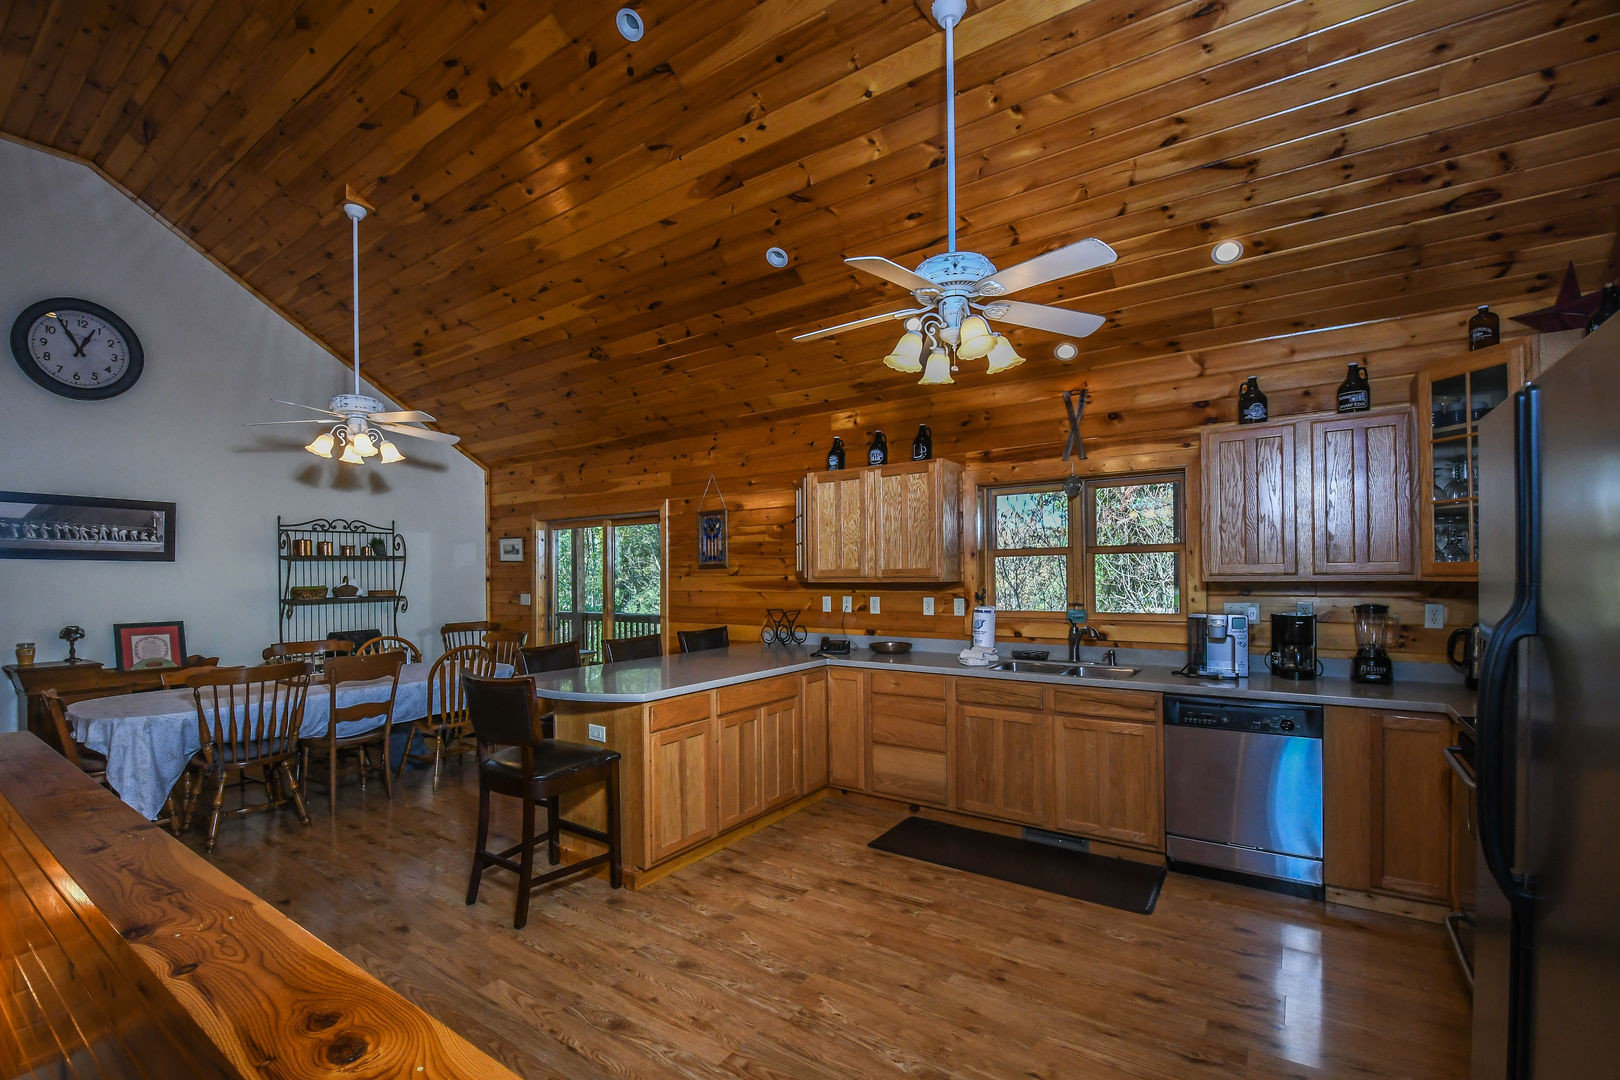 cheap hardwood flooring pittsburgh of terrapin station taylor made deep creek vacations sales regarding image 152835868